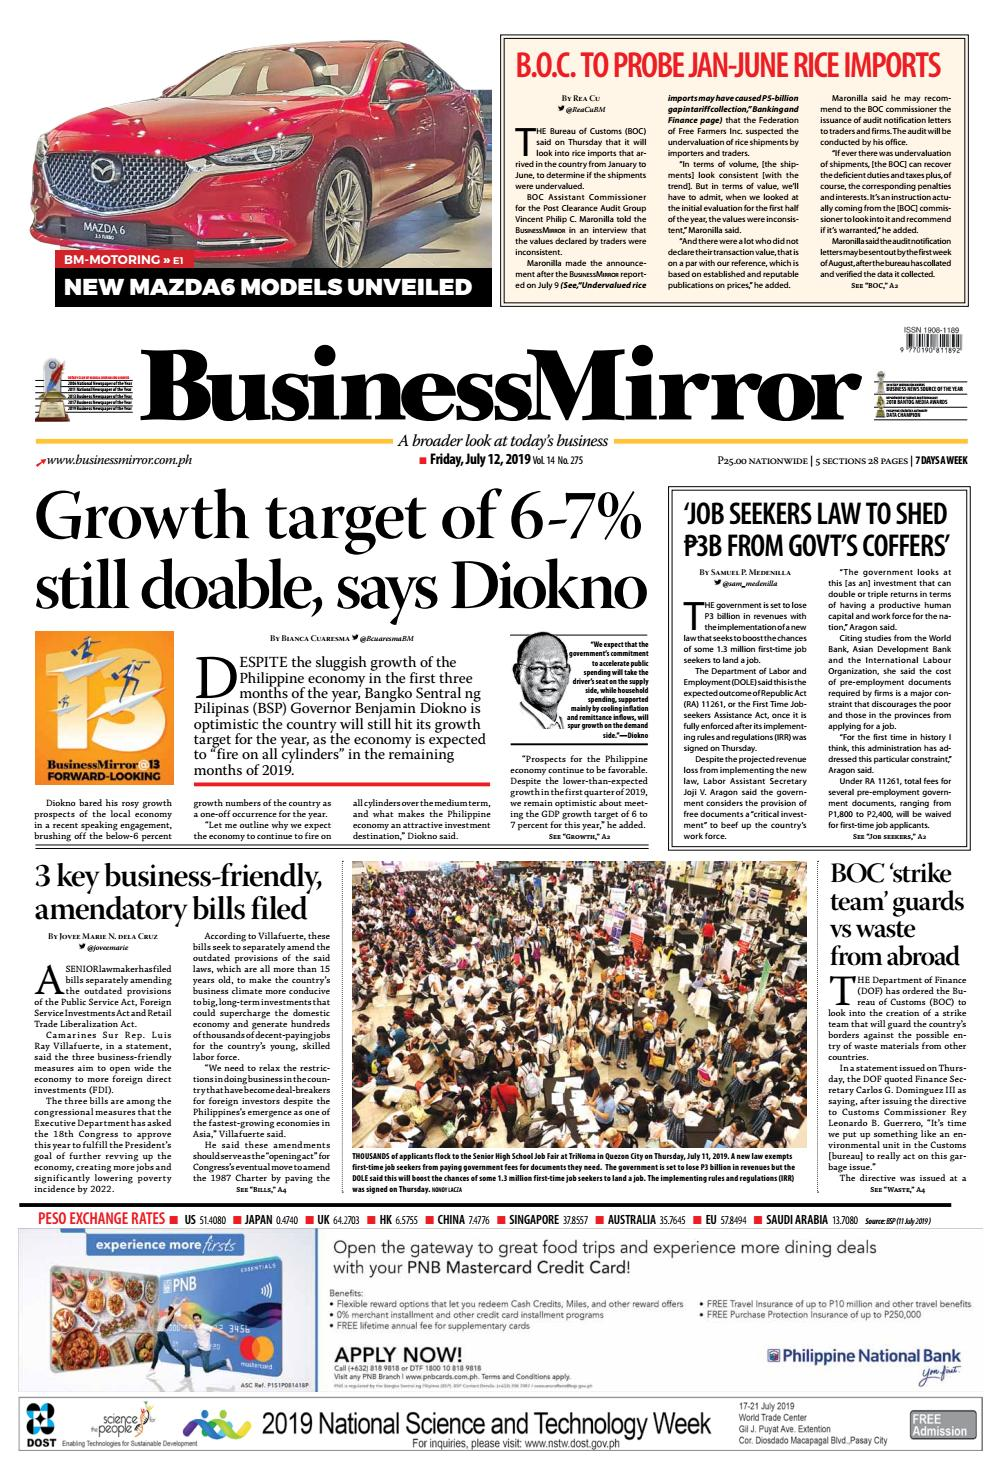 Businessmirror July 12, 2019 by BusinessMirror - issuu